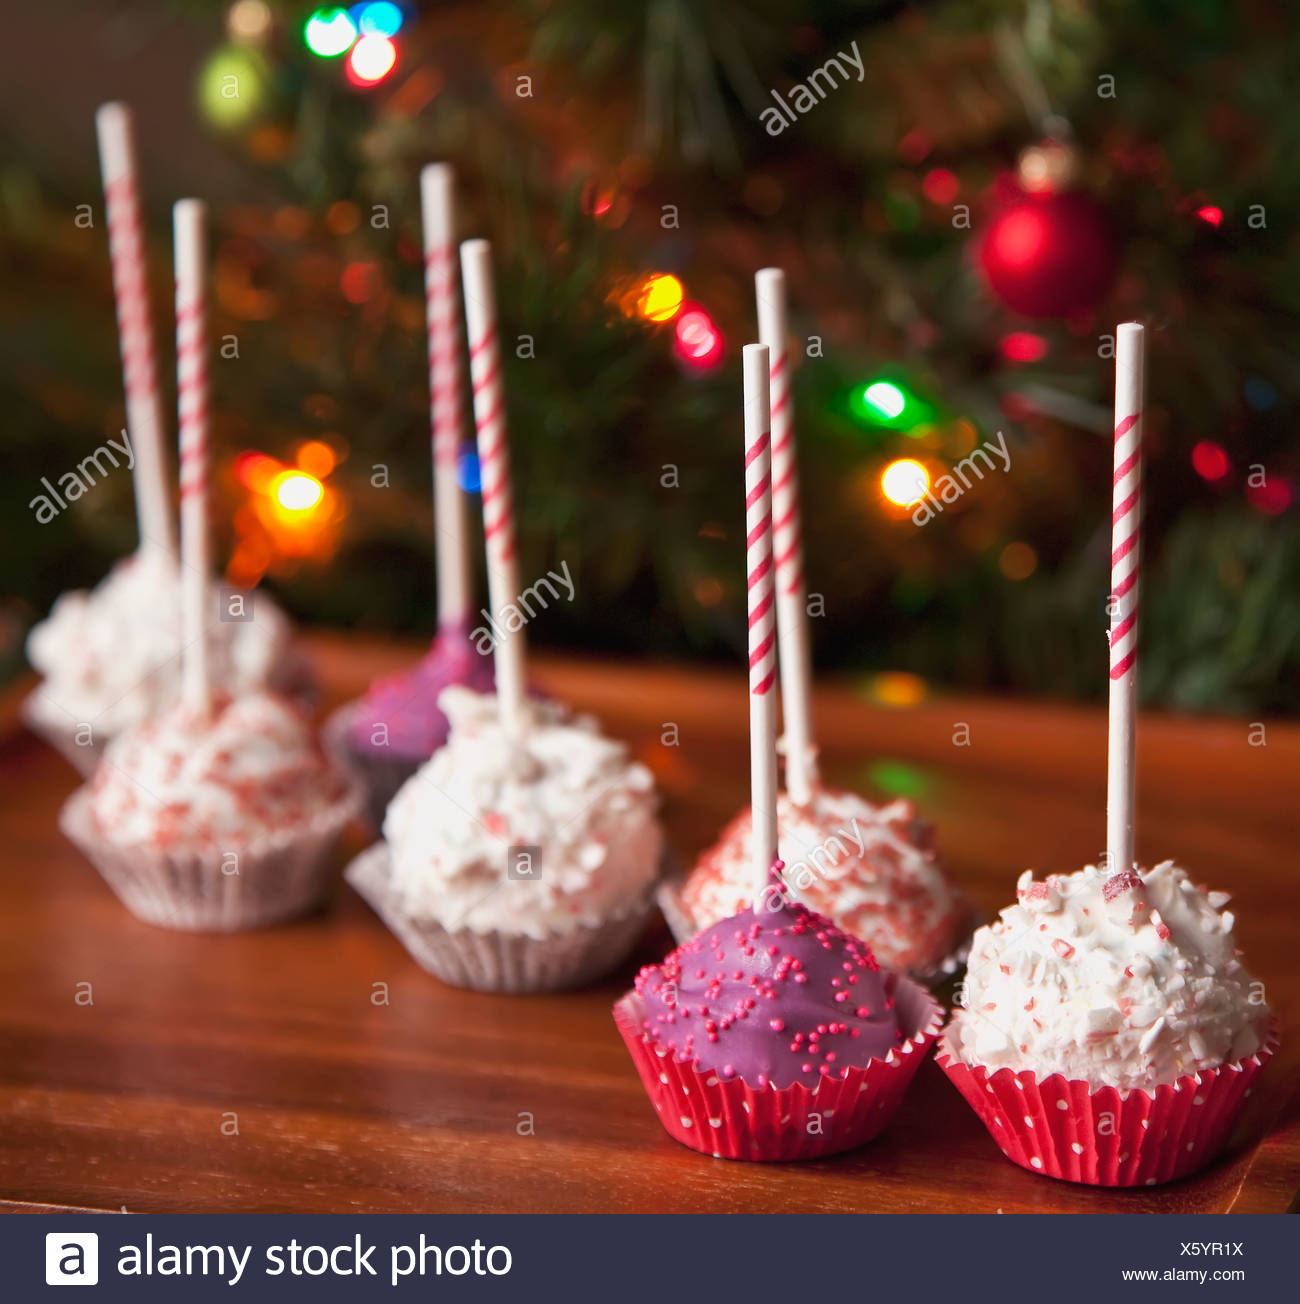 Decorated Pink Cake Pops By A Christmas Tree Edmonton Alberta Canada